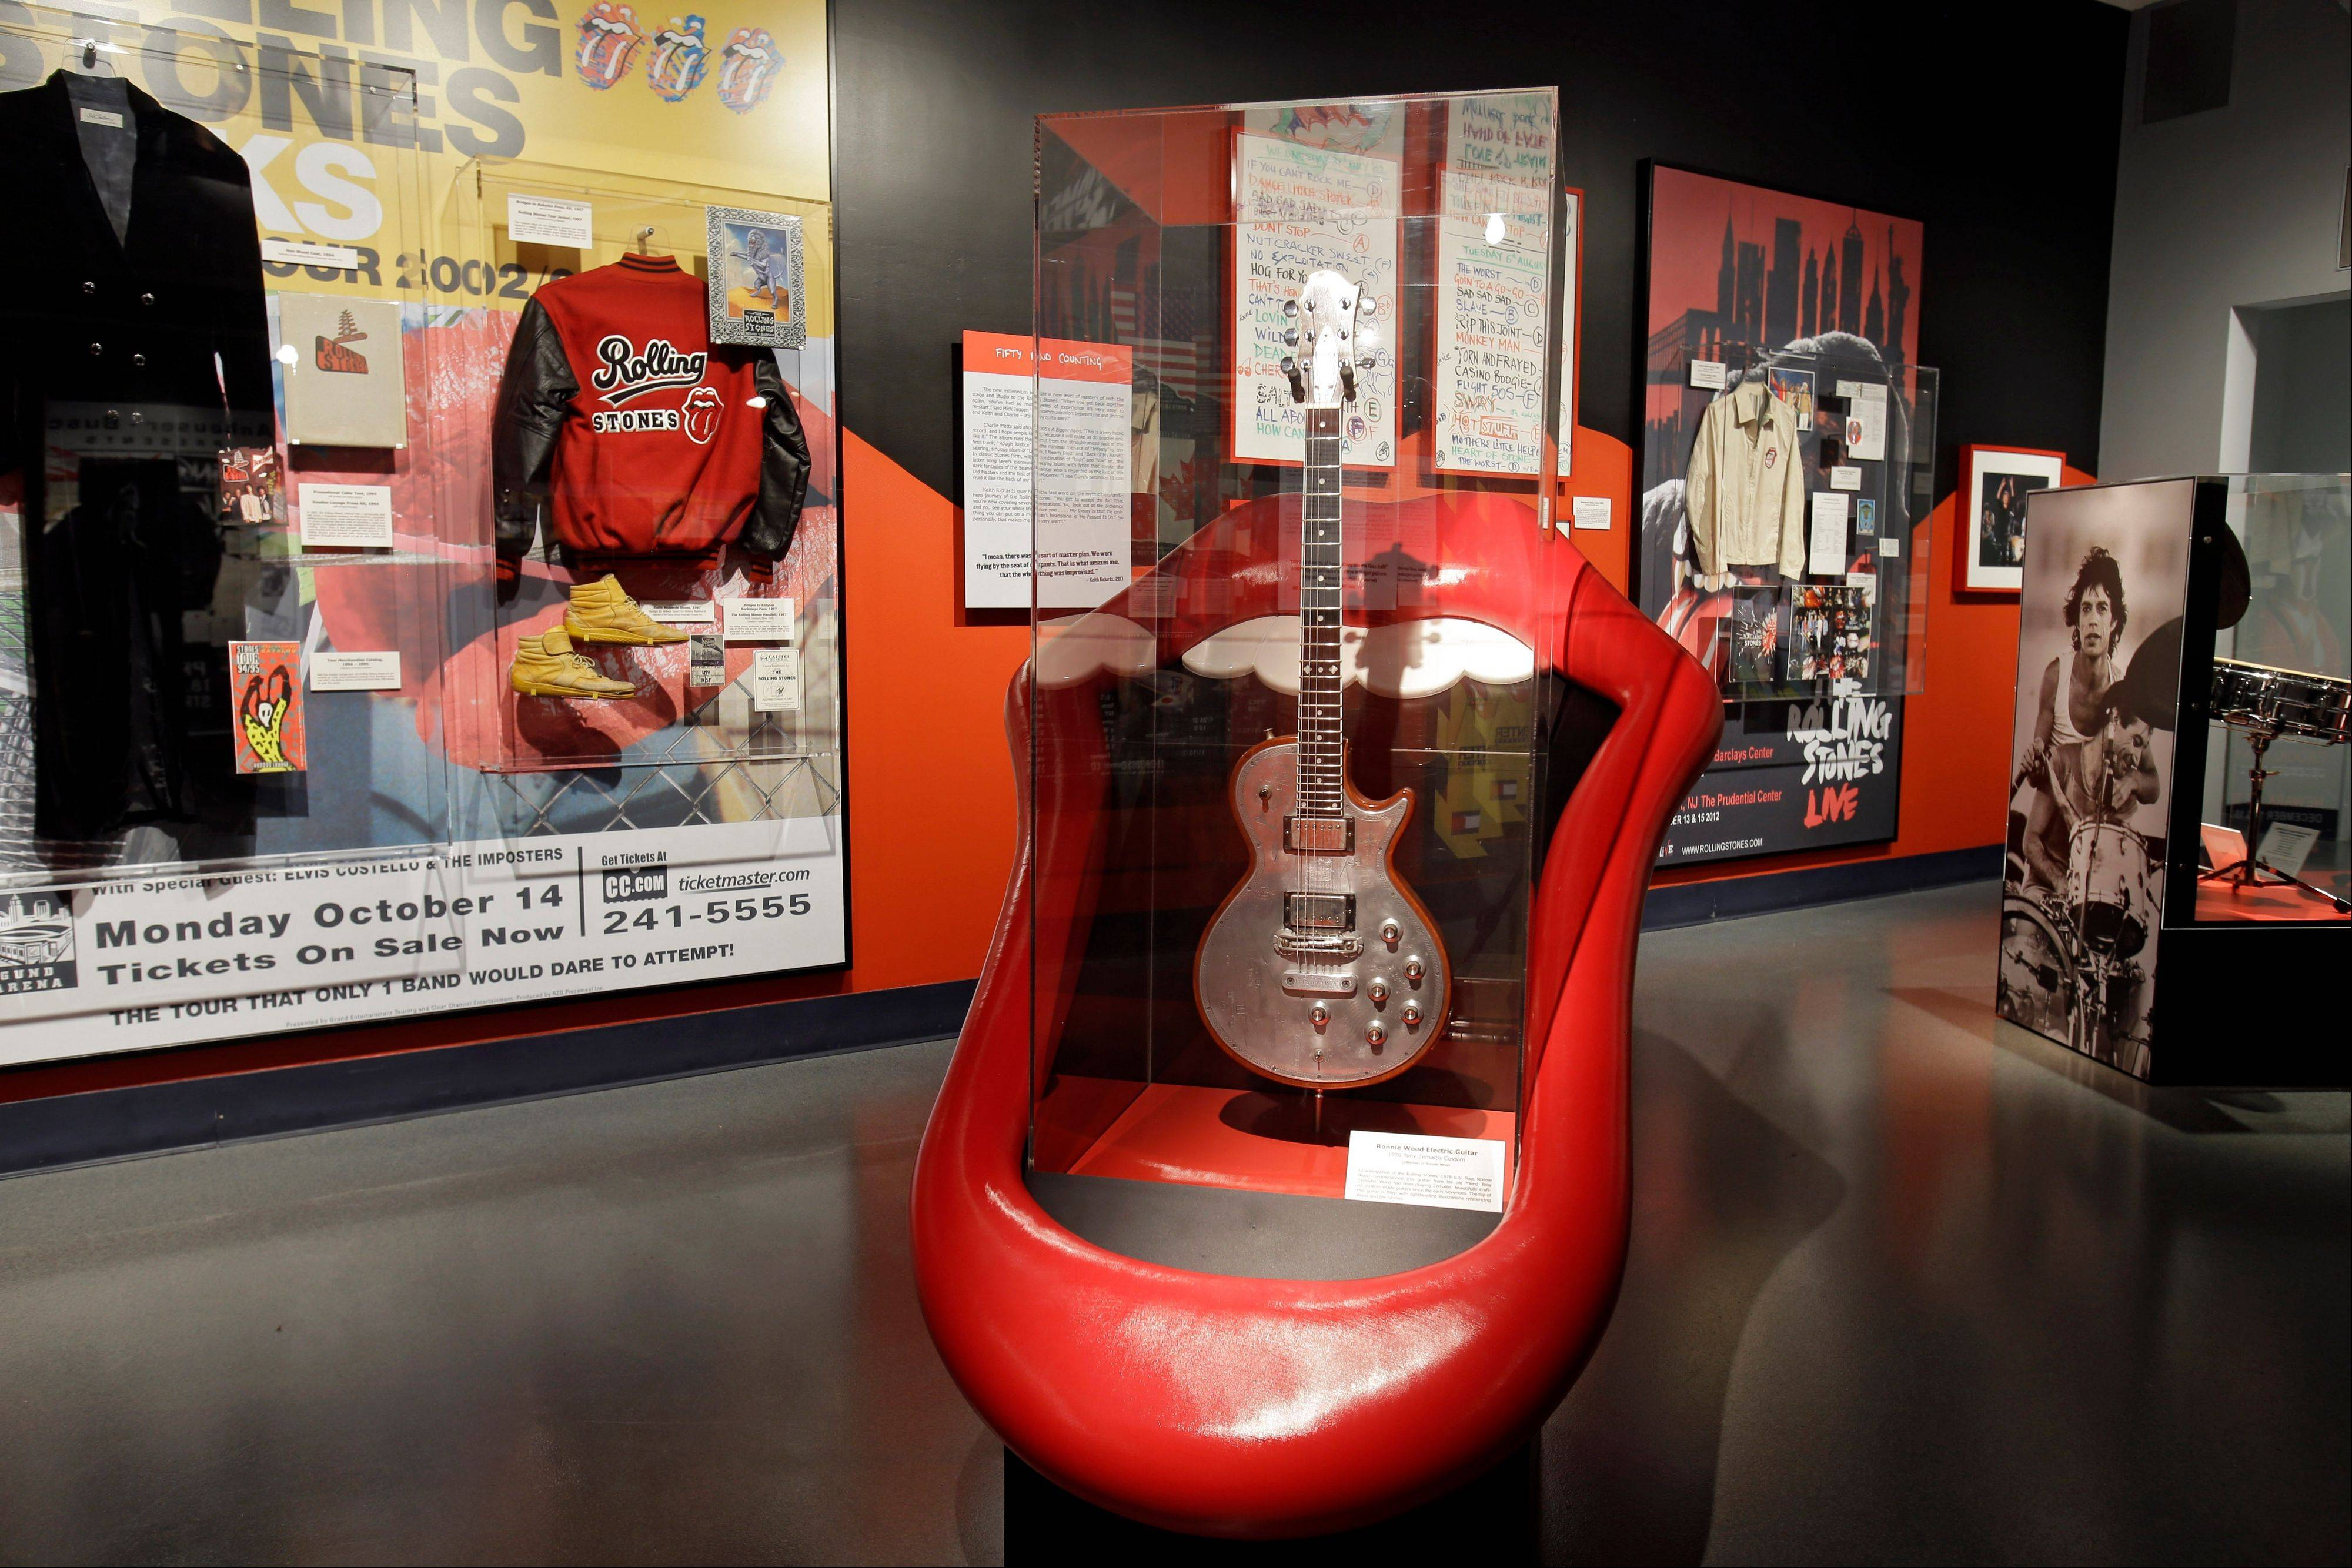 Rolling Stones memorabilia is displayed at the Rock and Roll Hall of Fame in Cleveland in the new exhibit �Rolling Stones 50 Years of Satisfaction.�